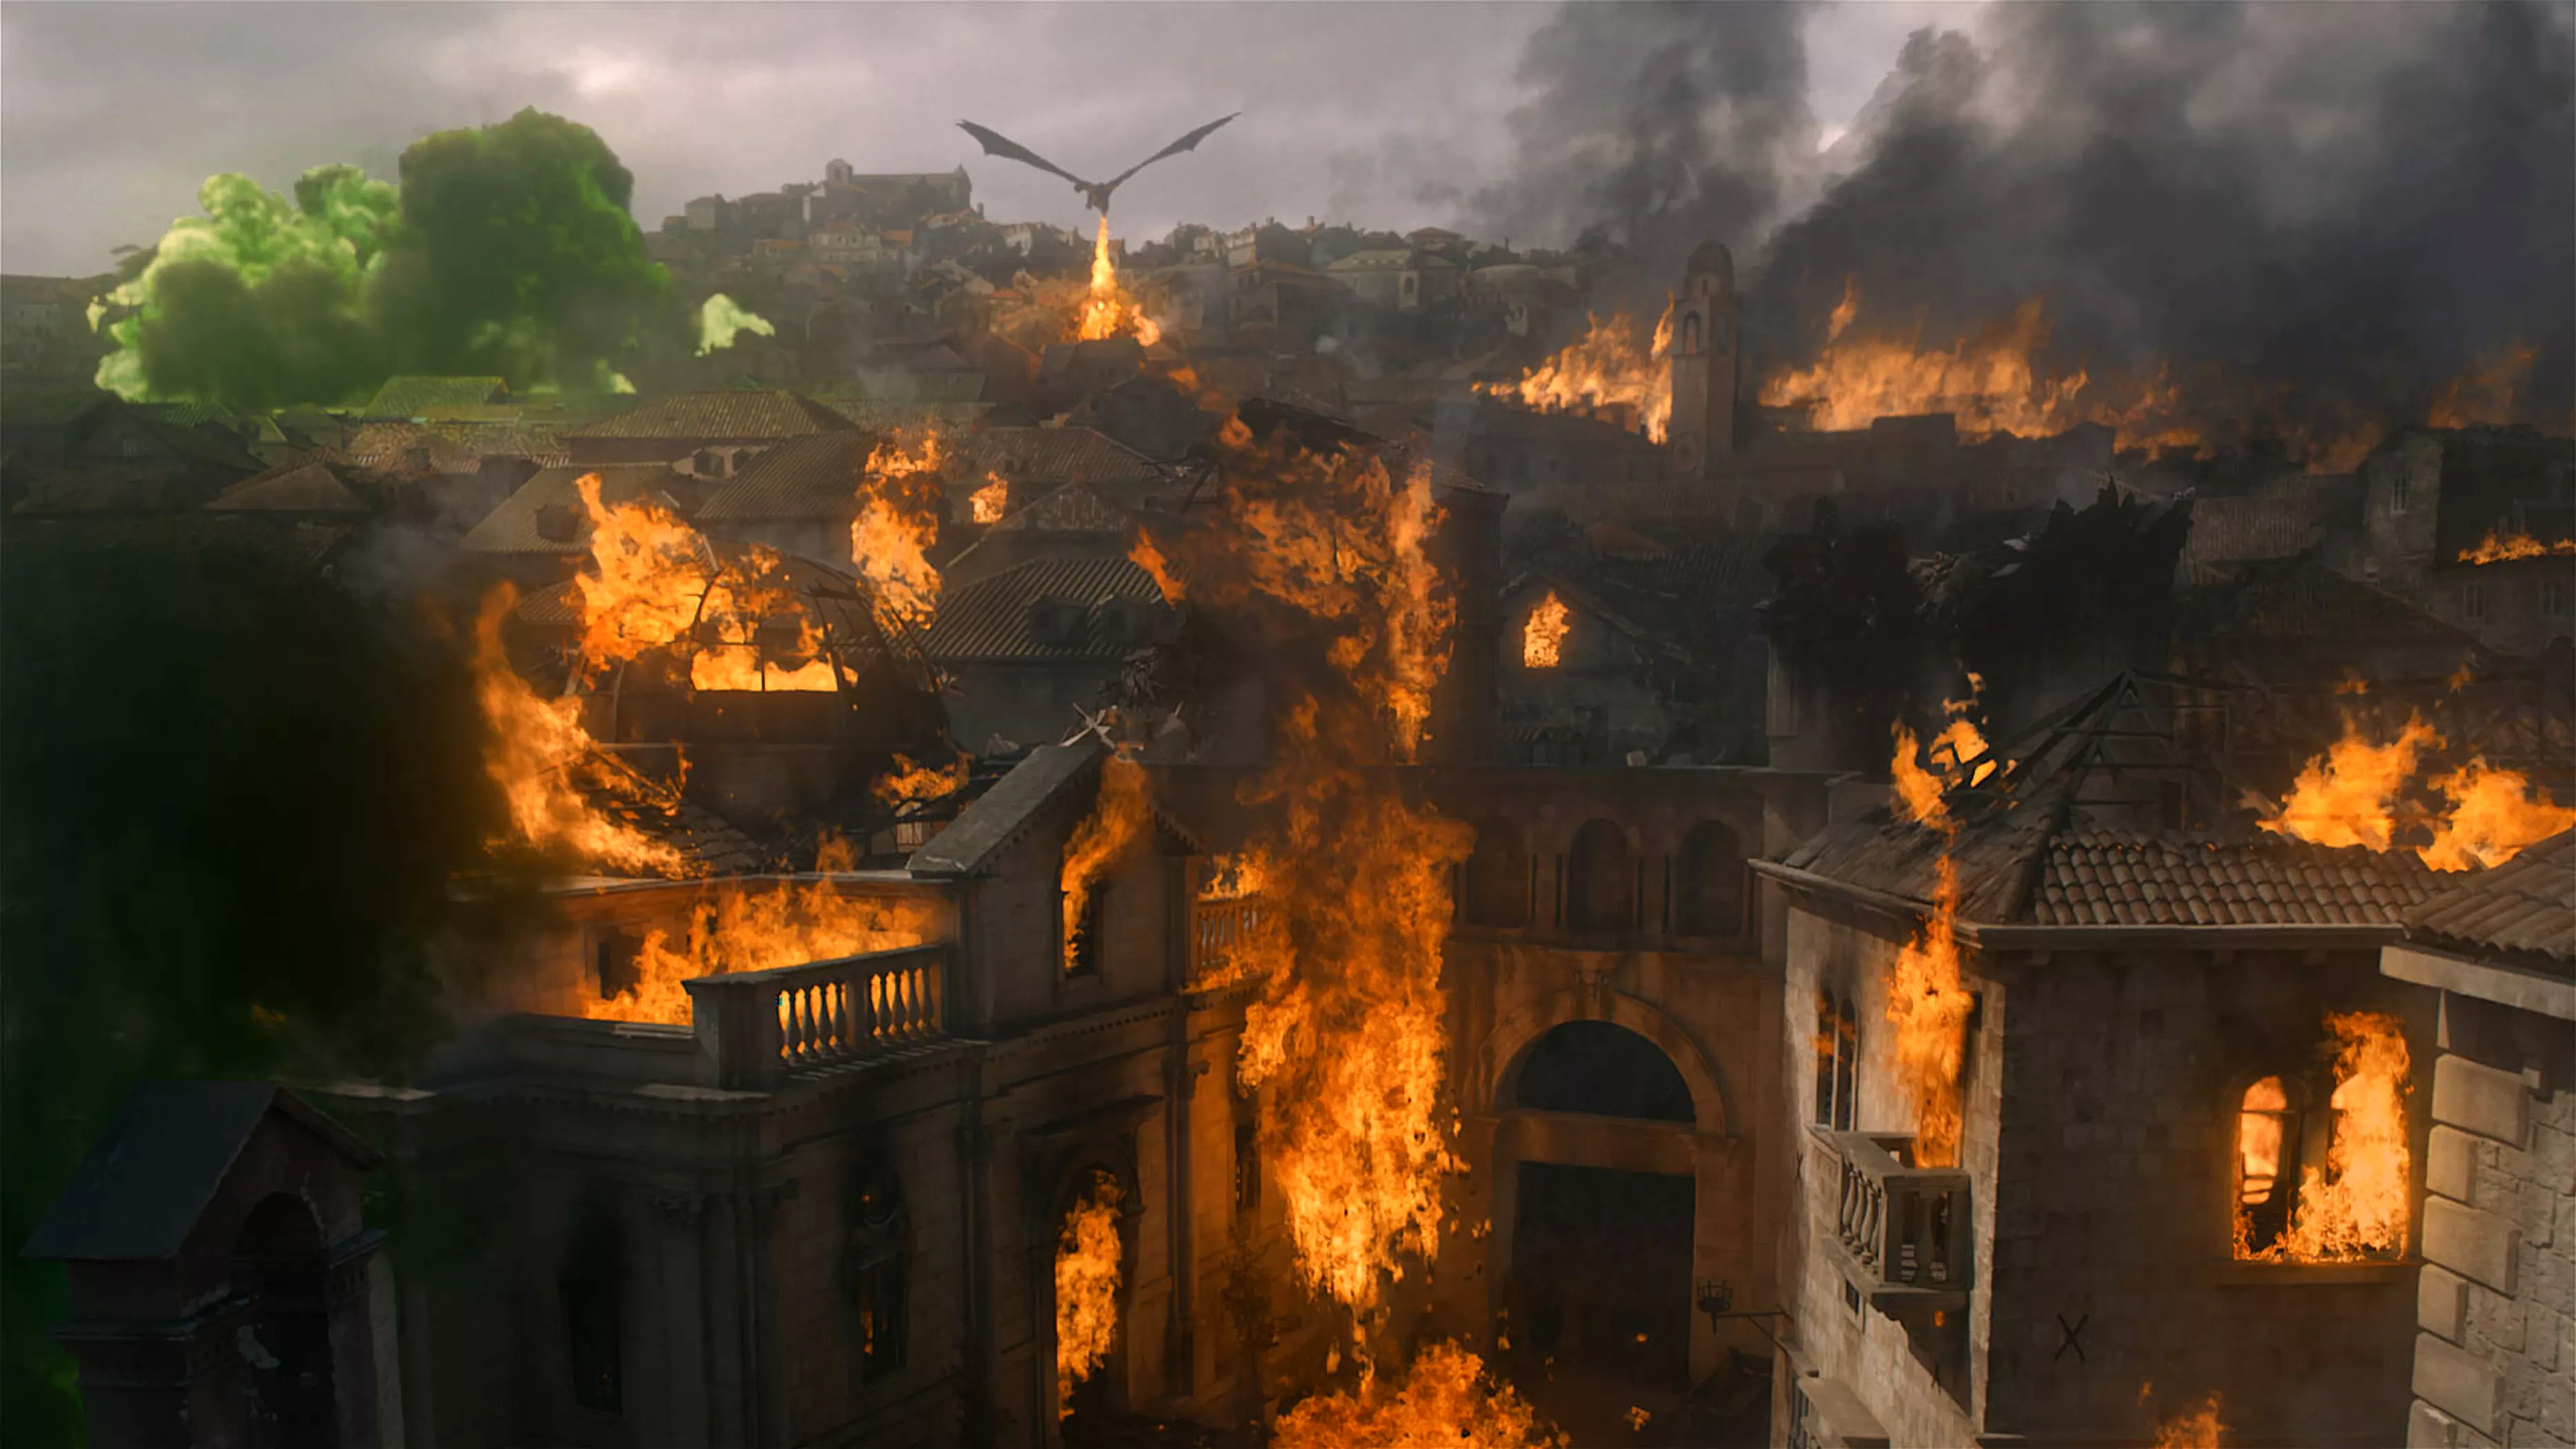 8x05 - The Bells - King's Landing